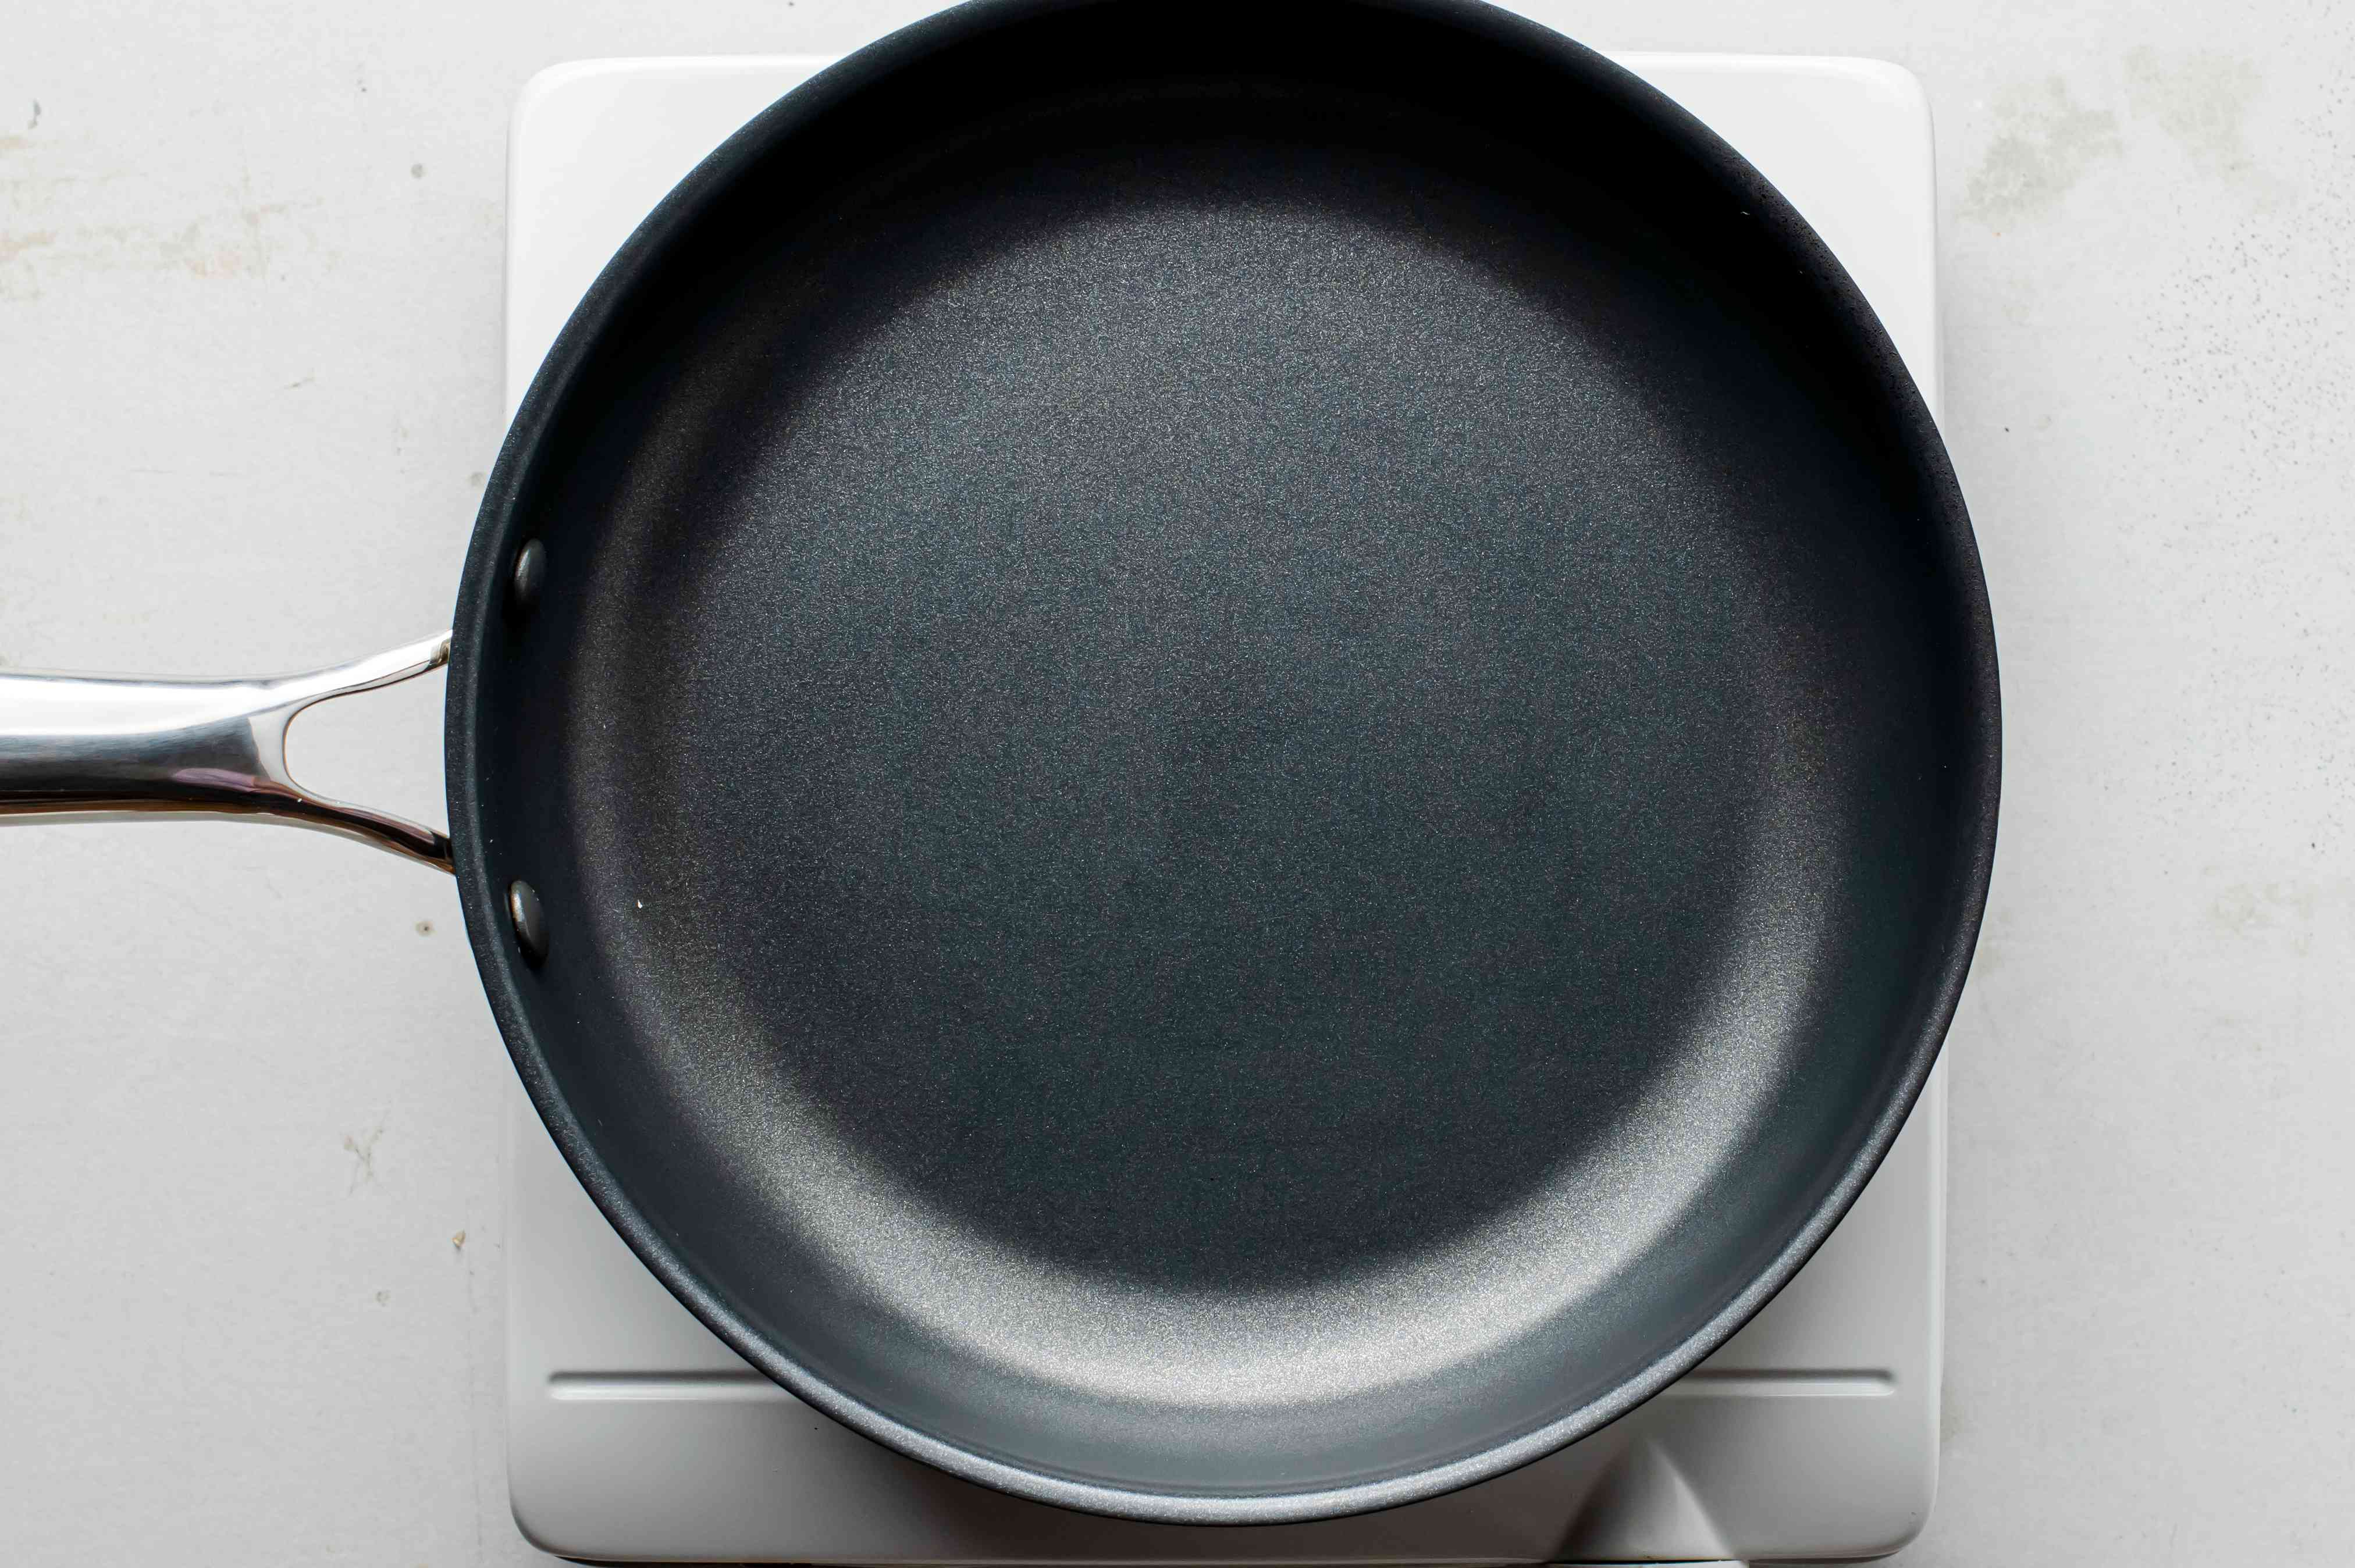 Heating a nonstick skillet